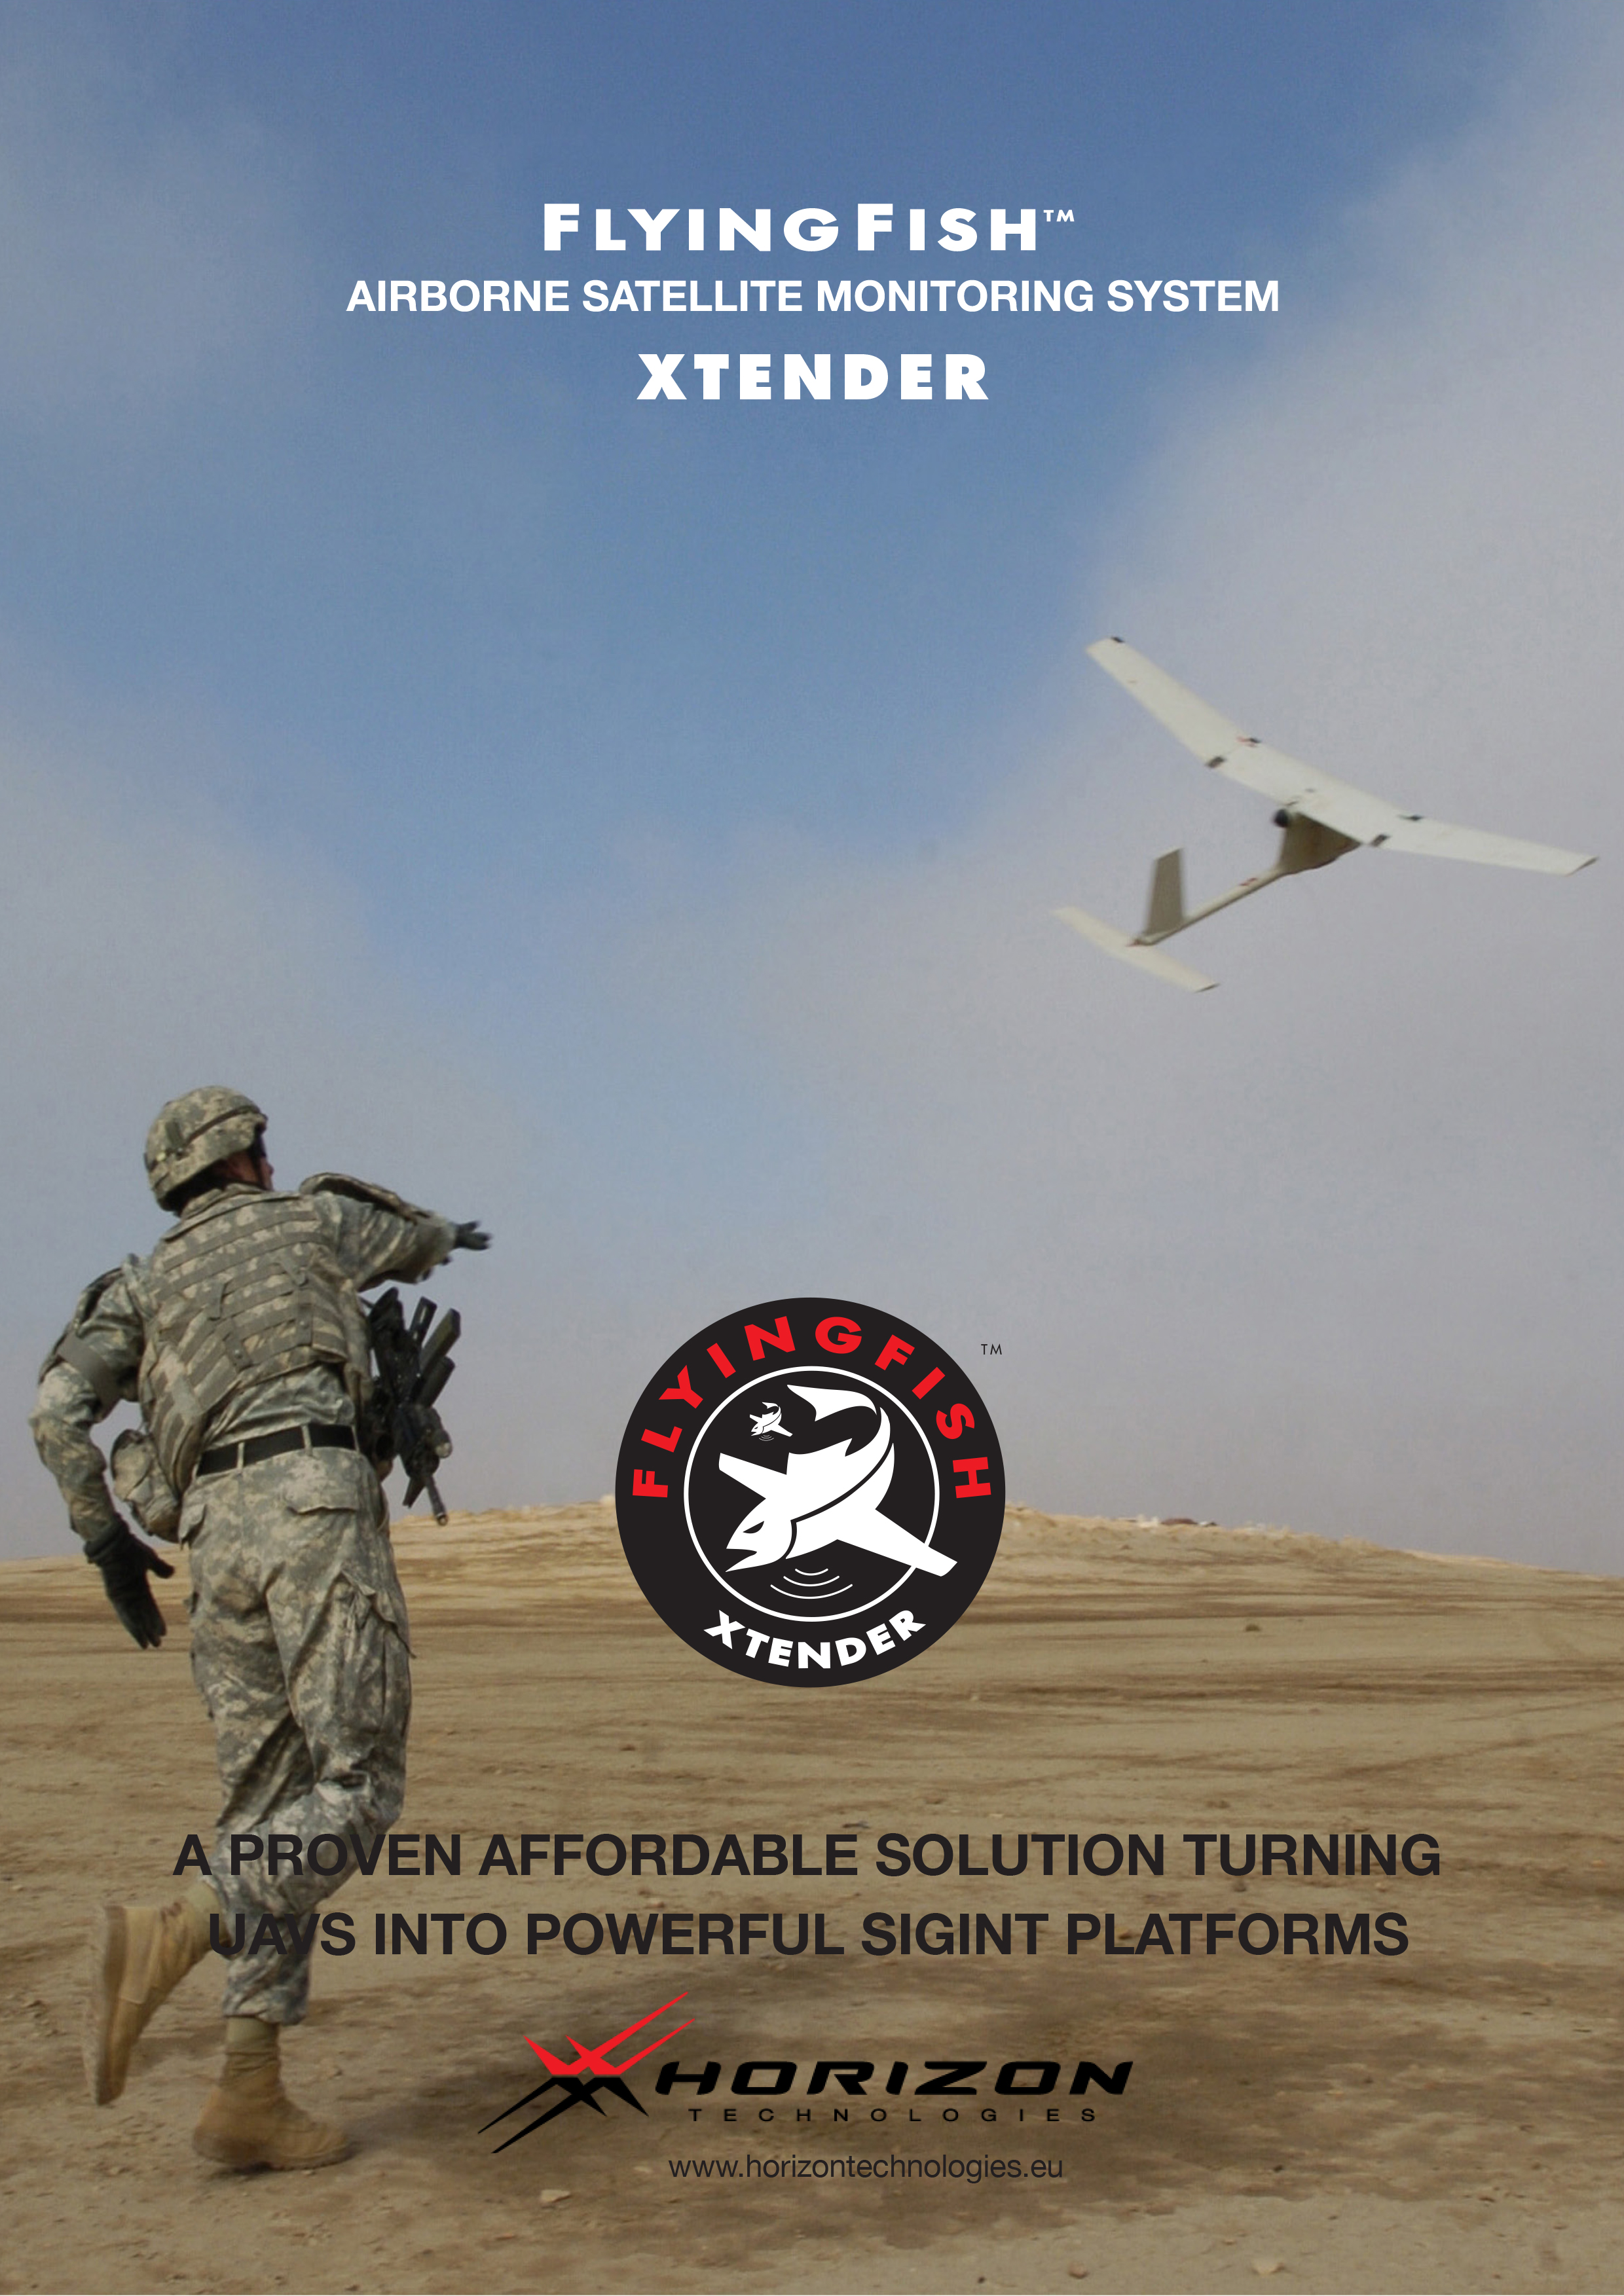 FlyingFish™ Xtender Airborne Satellite Monitoring System